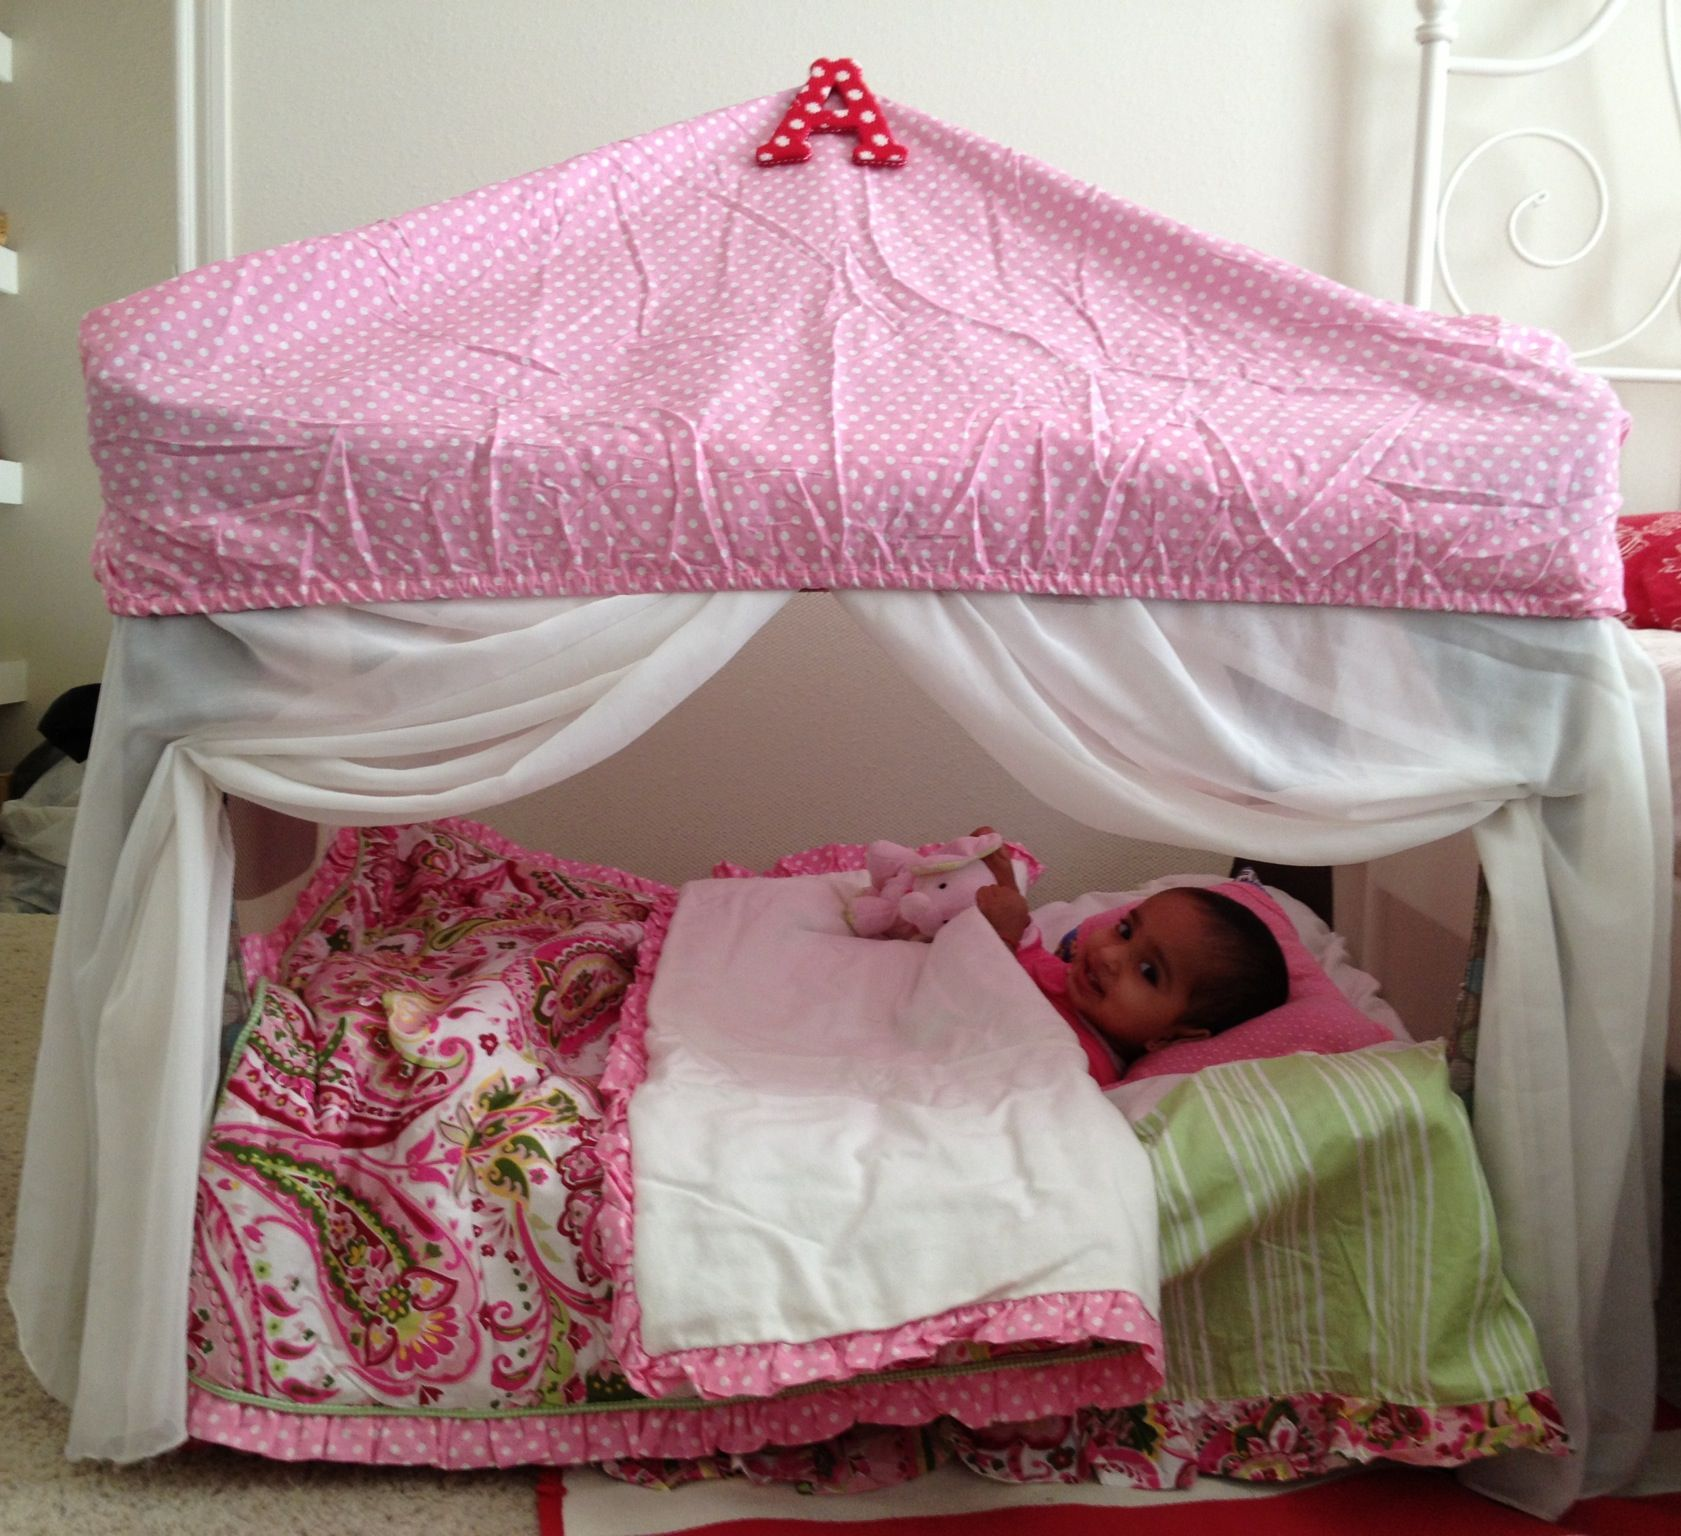 Repurpose of pack n play to a reading and napping tent! Toddler Bed ... & Repurpose of pack n play to a reading and napping tent! | Baby ...